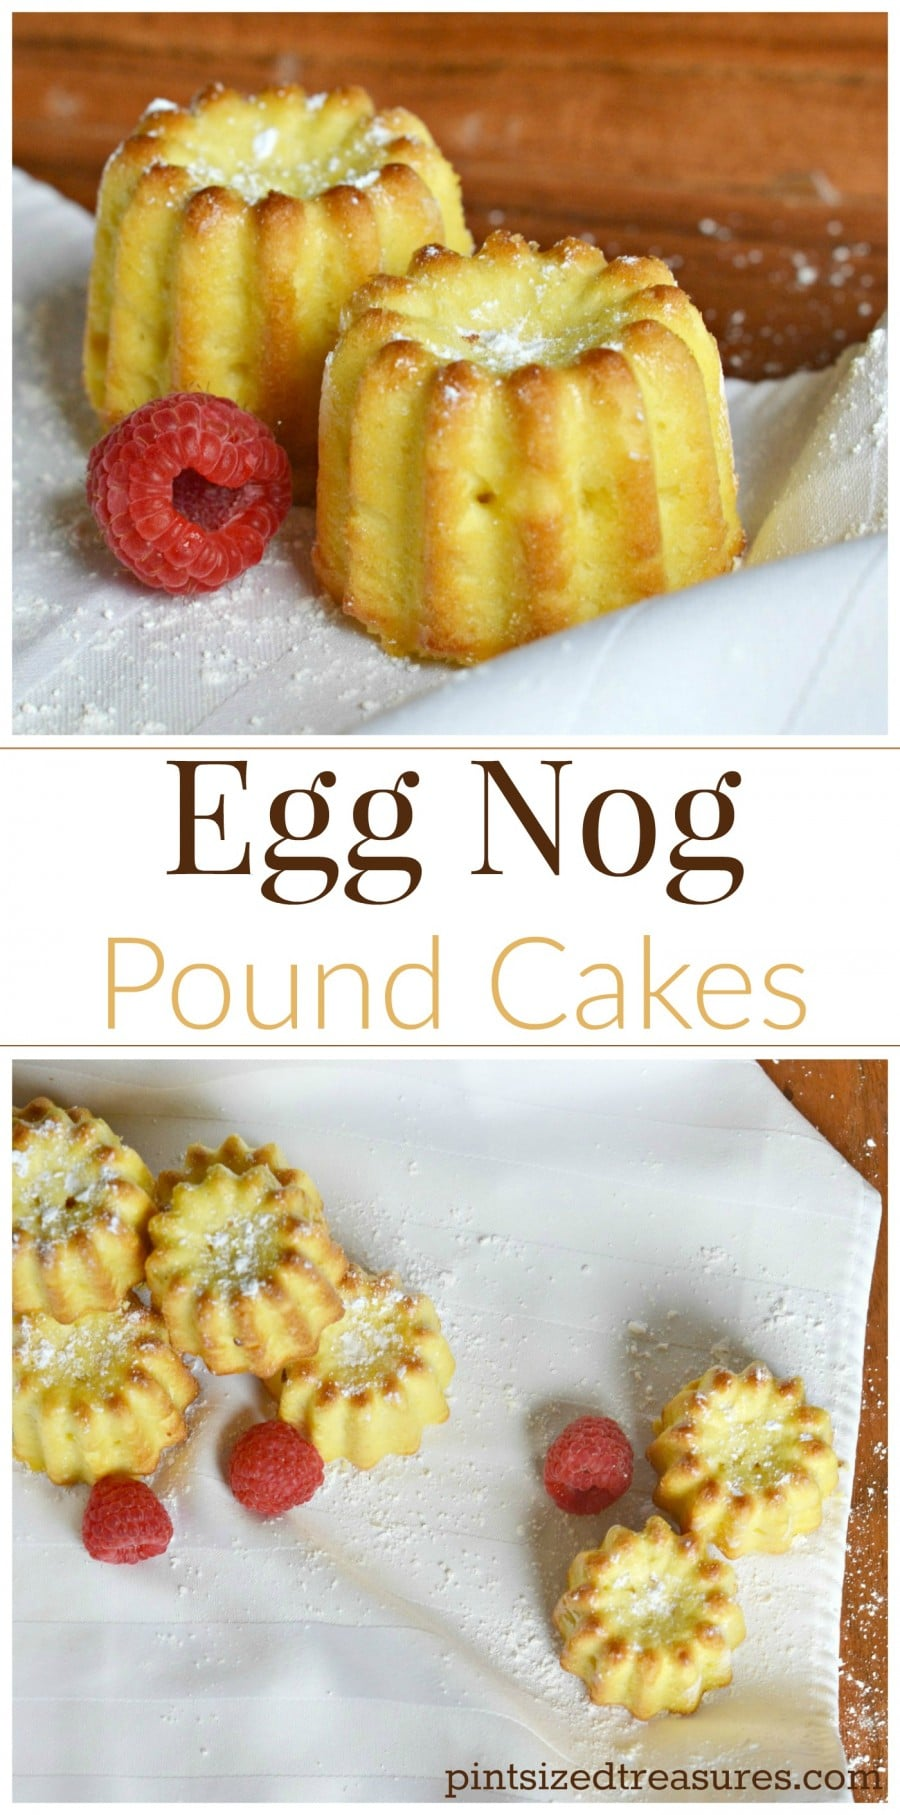 egg nog pound cakes